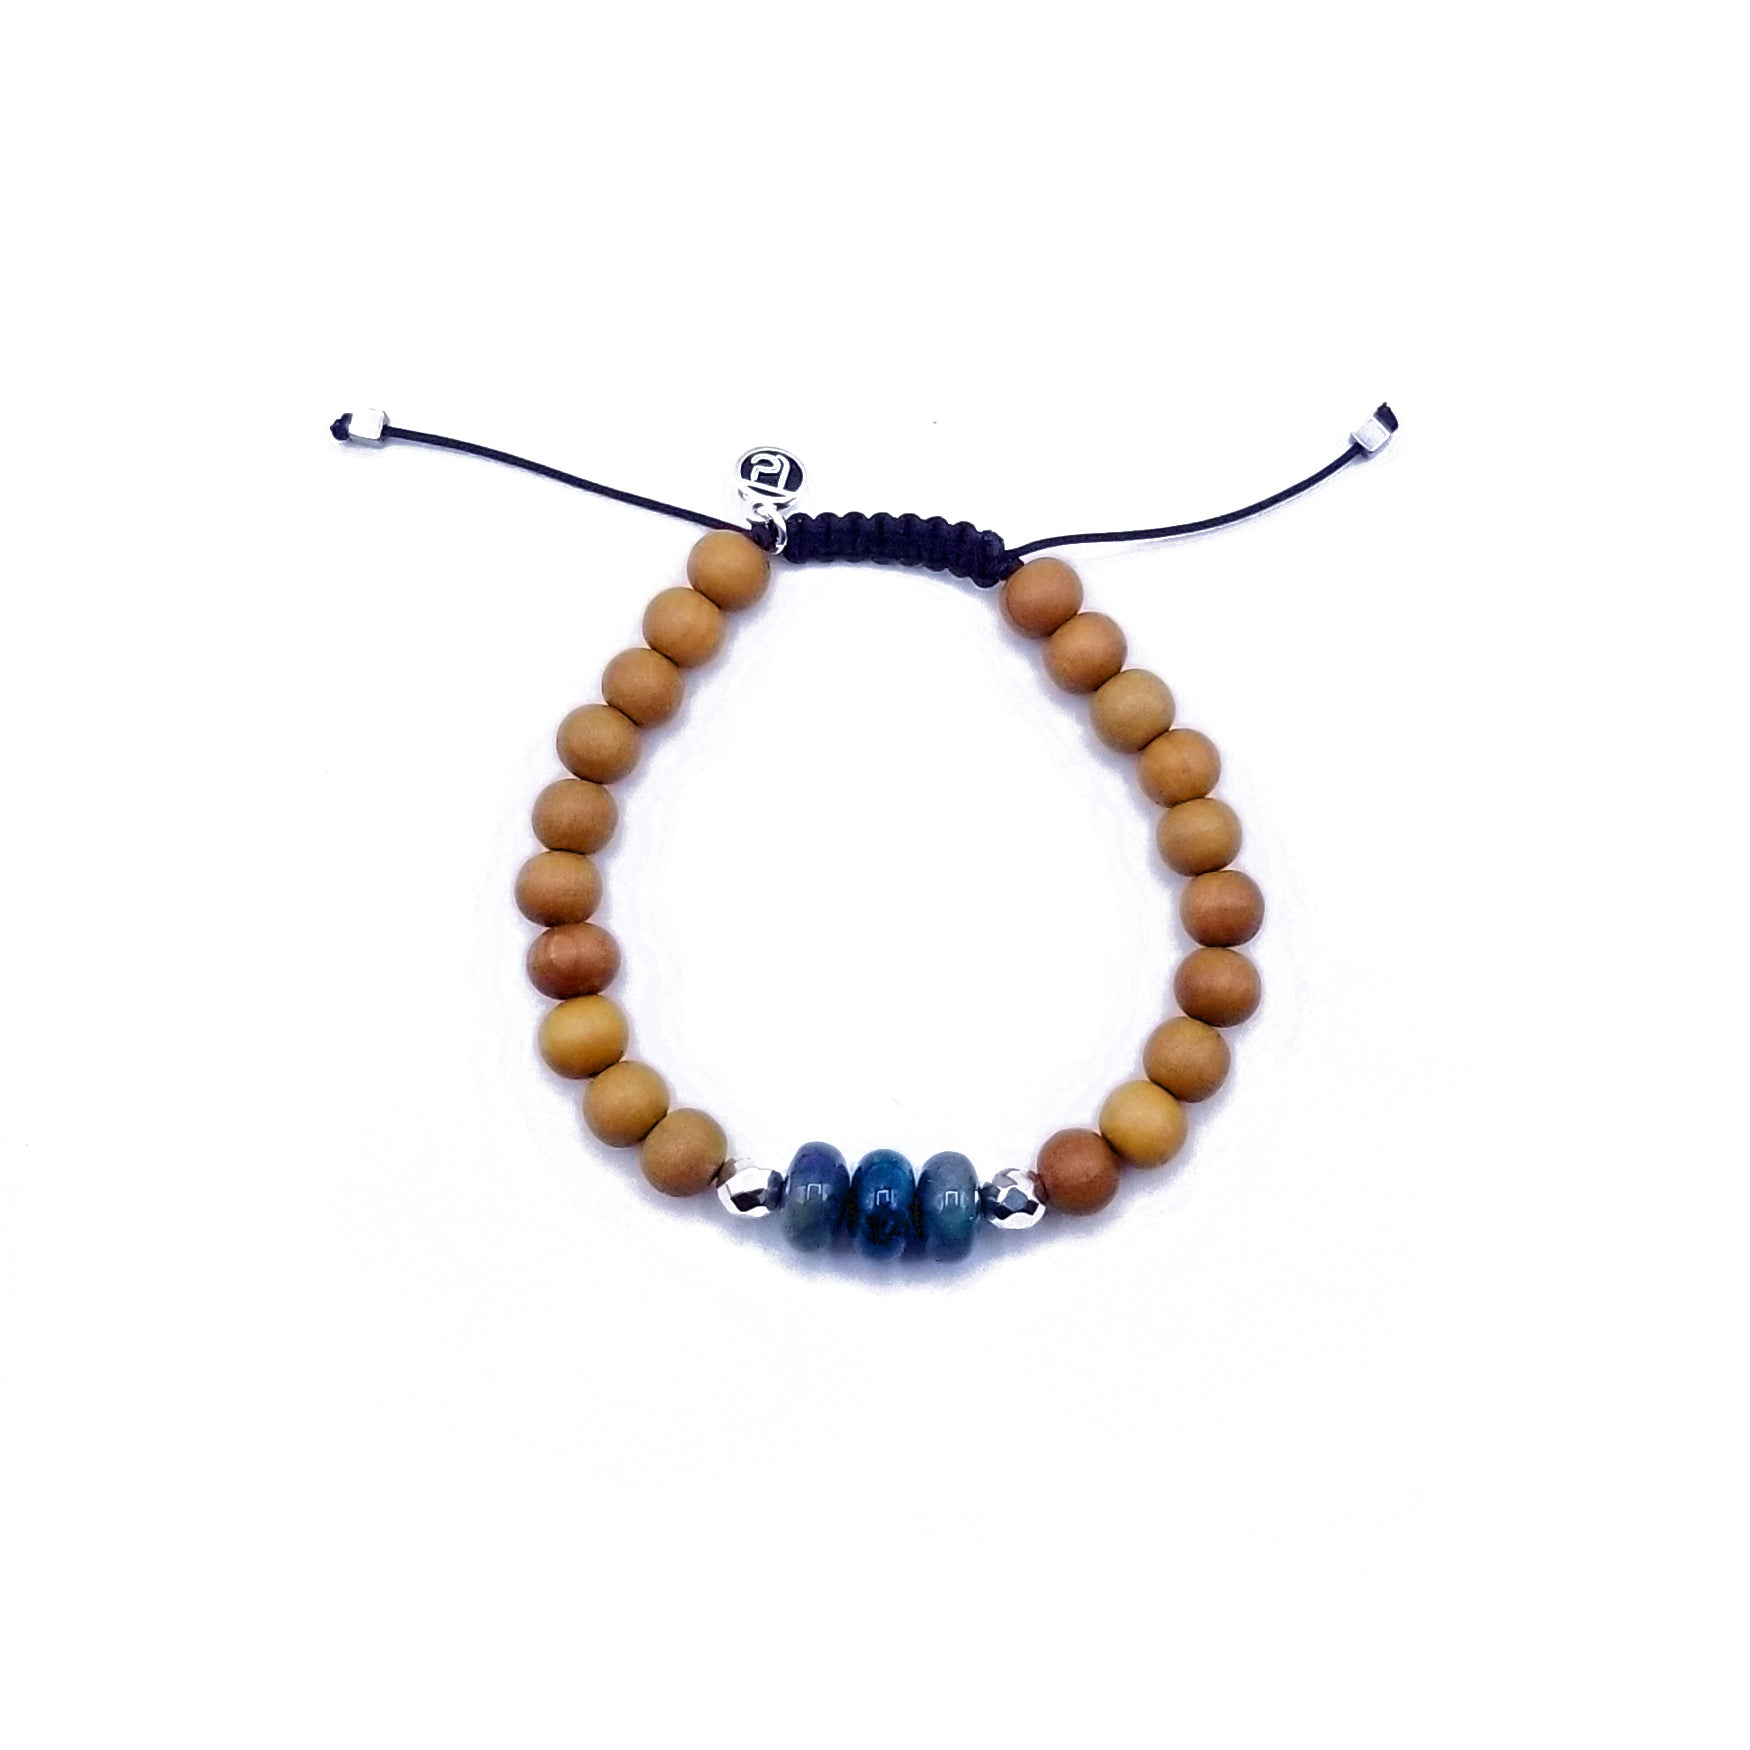 Honor Mala Bead Bracelet - Mala Beads Meditation Accessories and Yoga Jewelry by Tiny Devotions